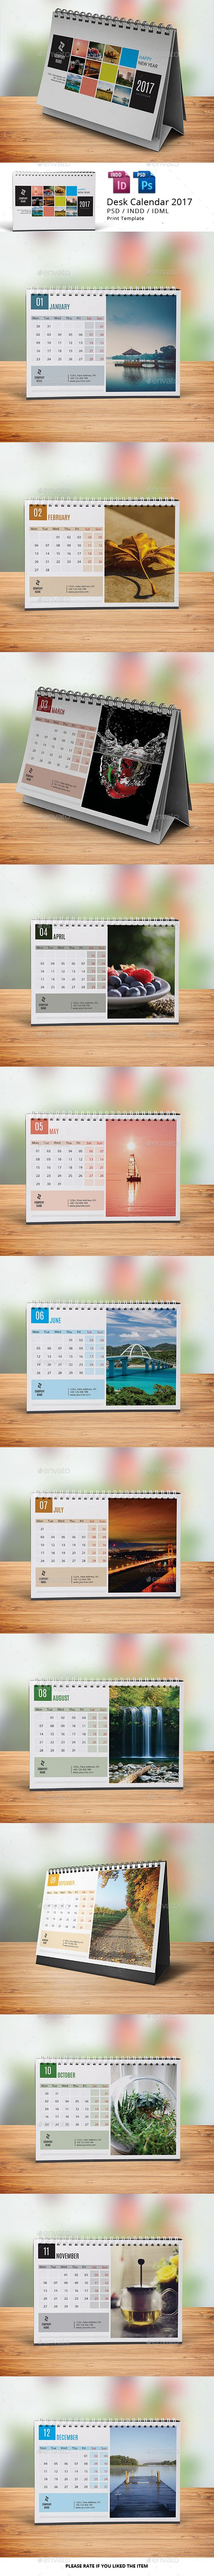 Desk Calendar   Calendar  Desk Calendars And  Design